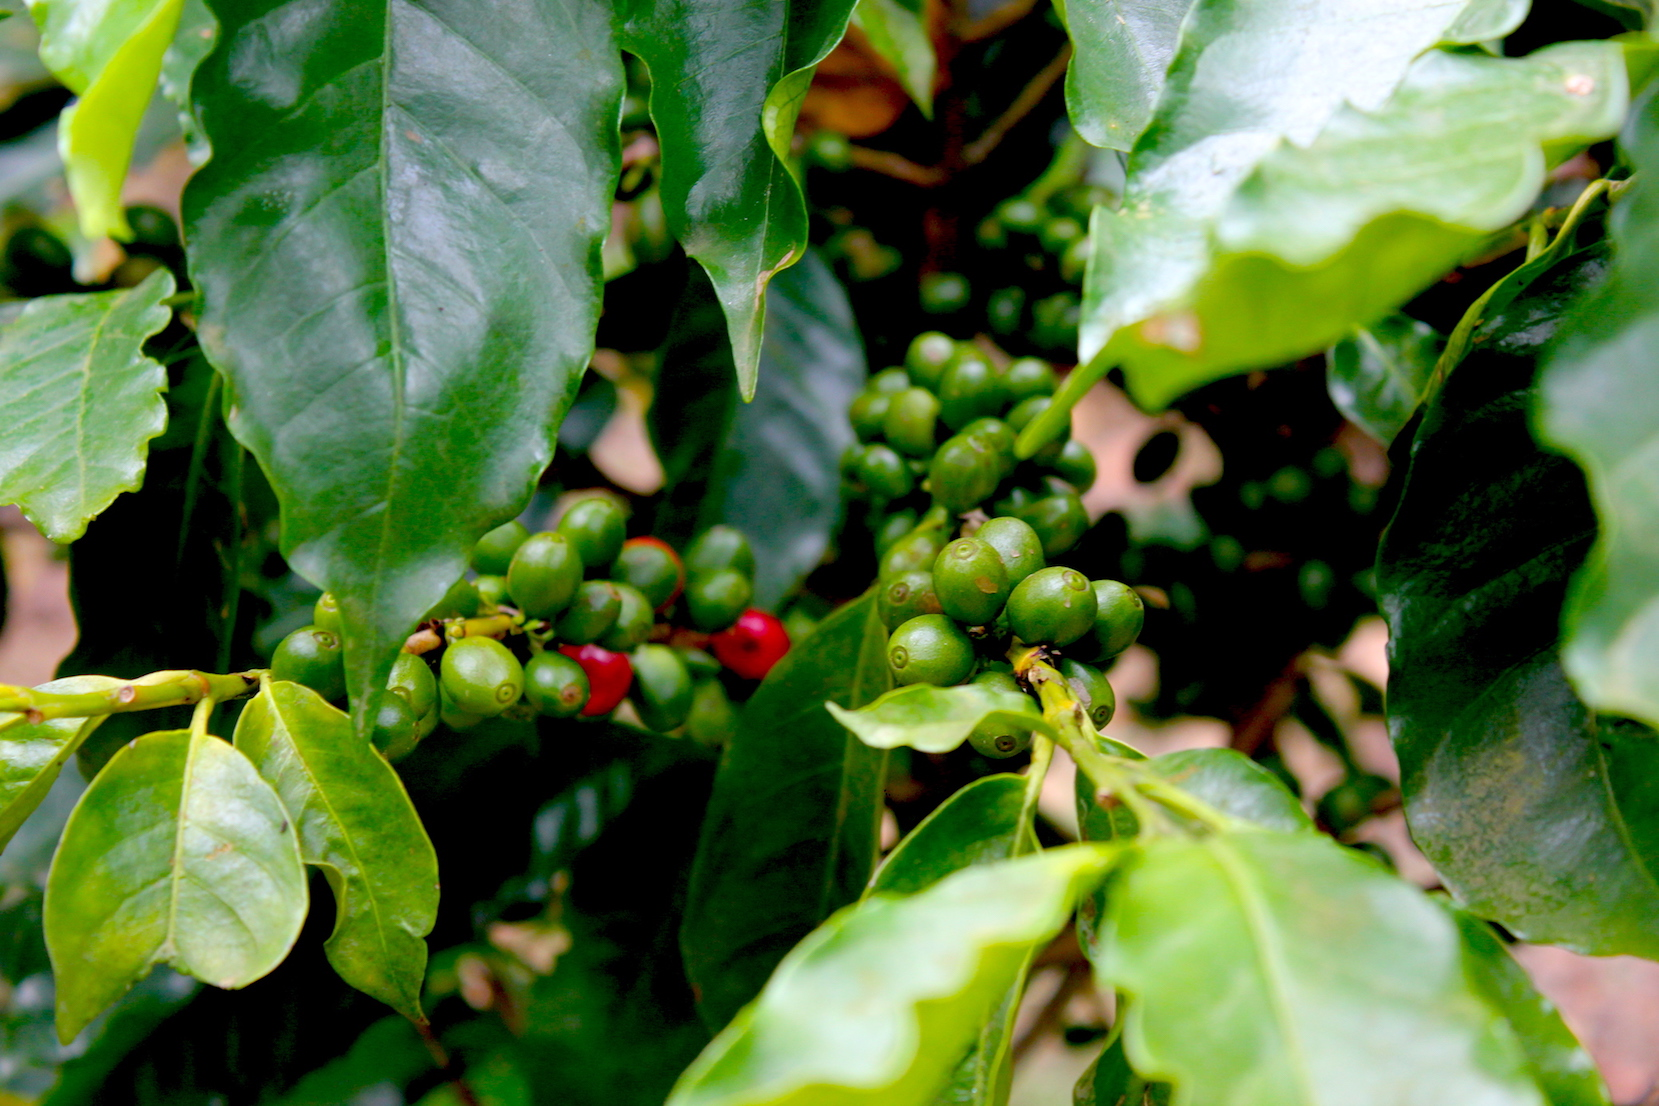 Coffee plantation at The Serai Chikmagalur